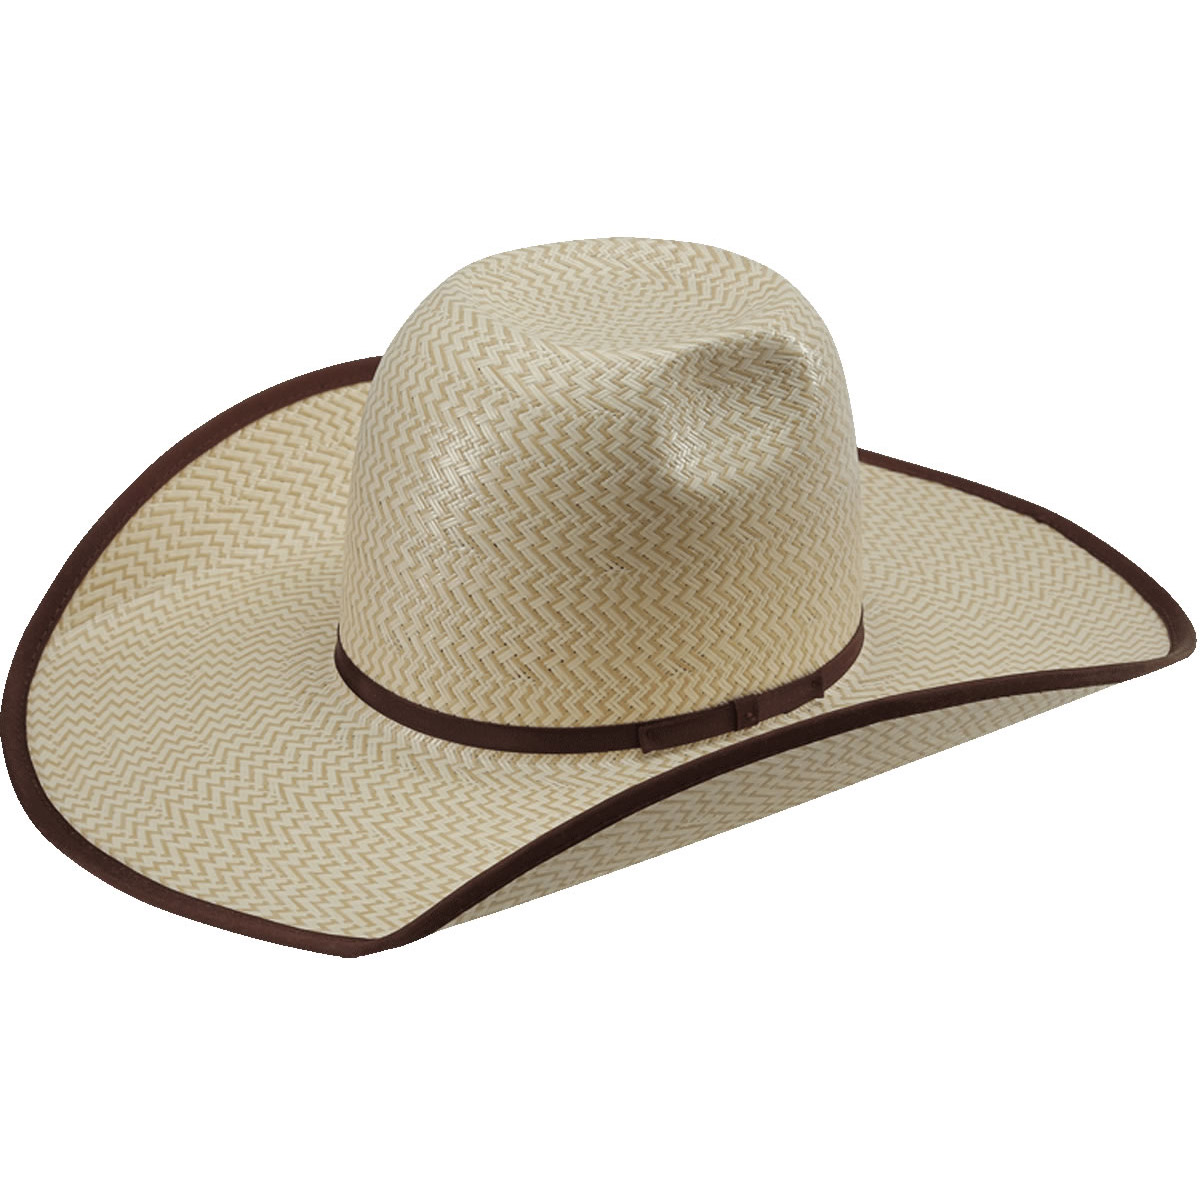 1fedb223cbd Pungo Ridge - American Hat Co 15☆ 3X3 Two-Tone Shantung Straw Hat ...